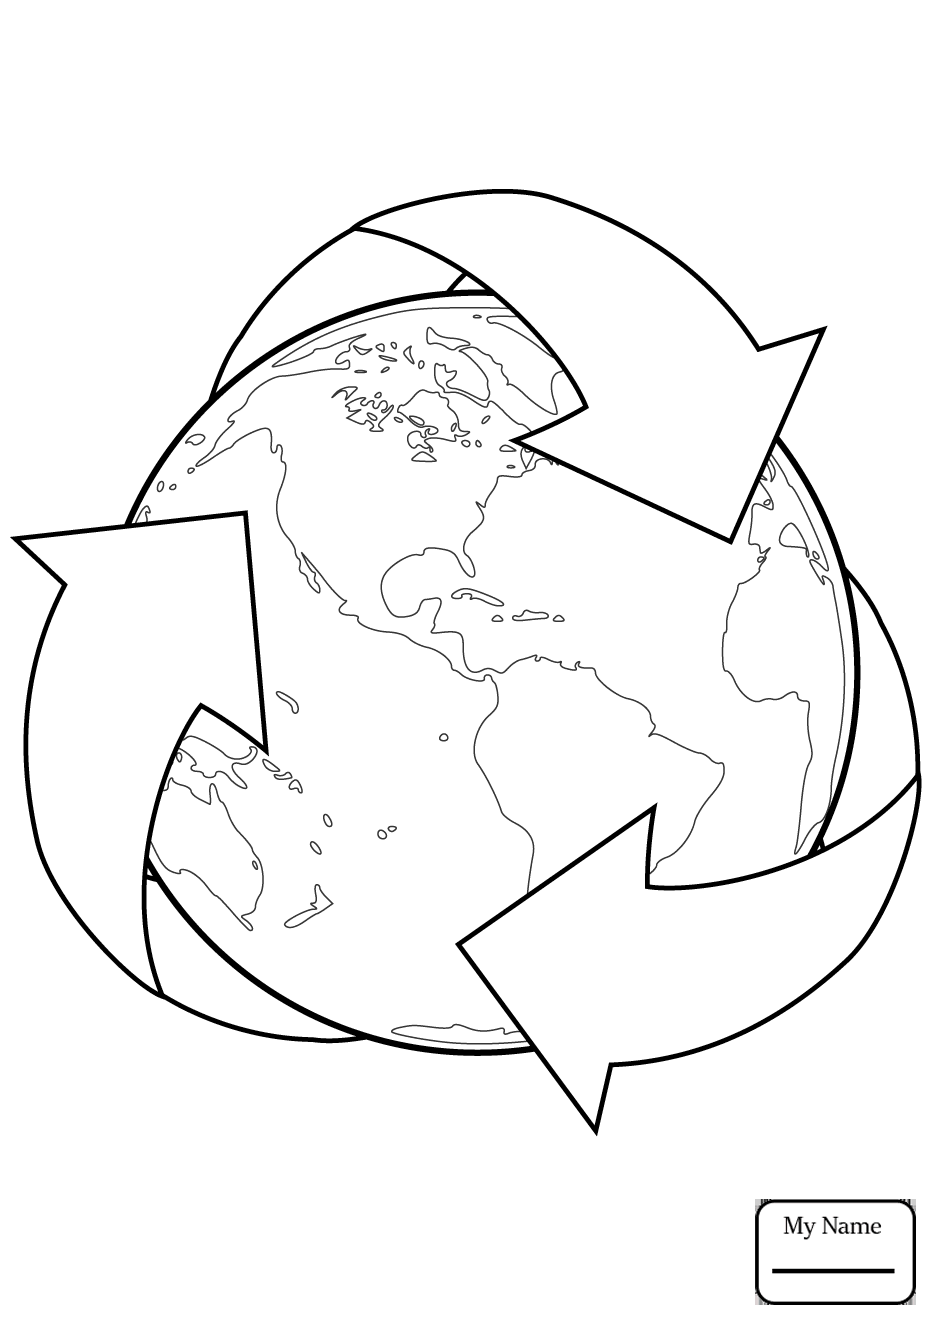 933x1326 Coloring Pages Recycling Nature Seasons Glass Recycling Bin